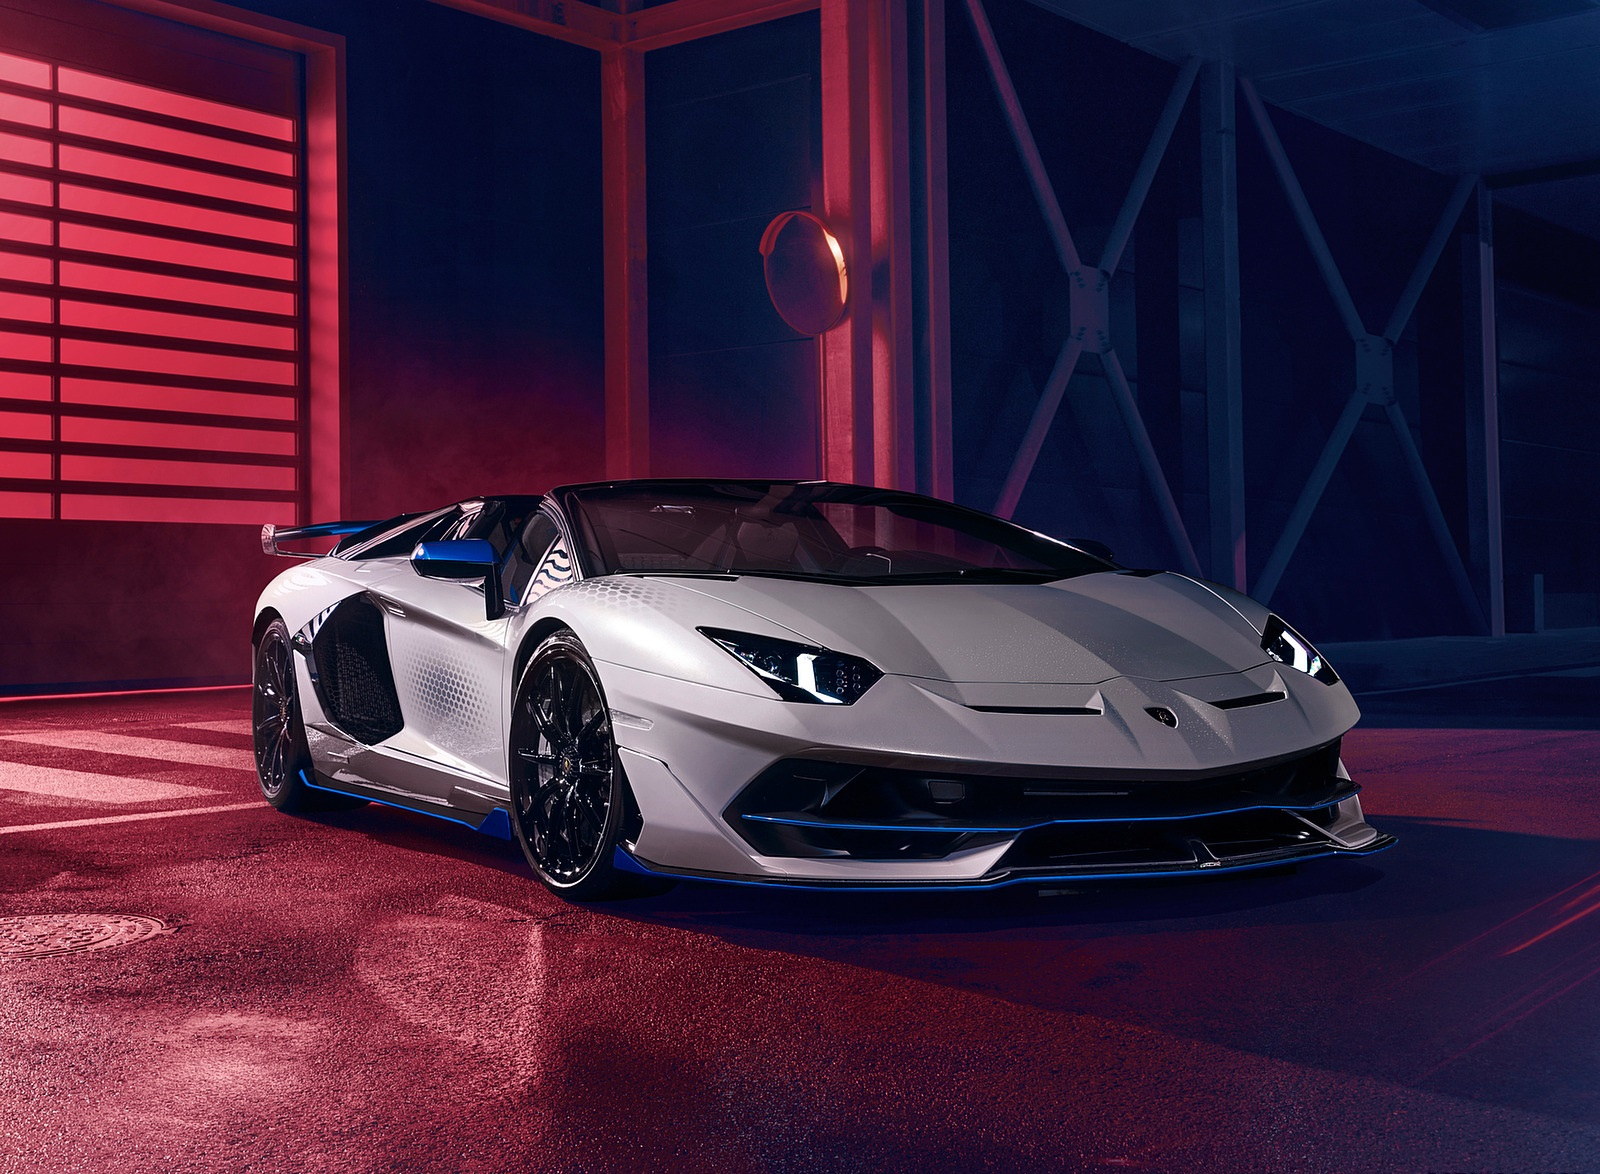 2020 Lamborghini Aventador SVJ Xago Edition Front Three-Quarter Wallpapers #1 of 12